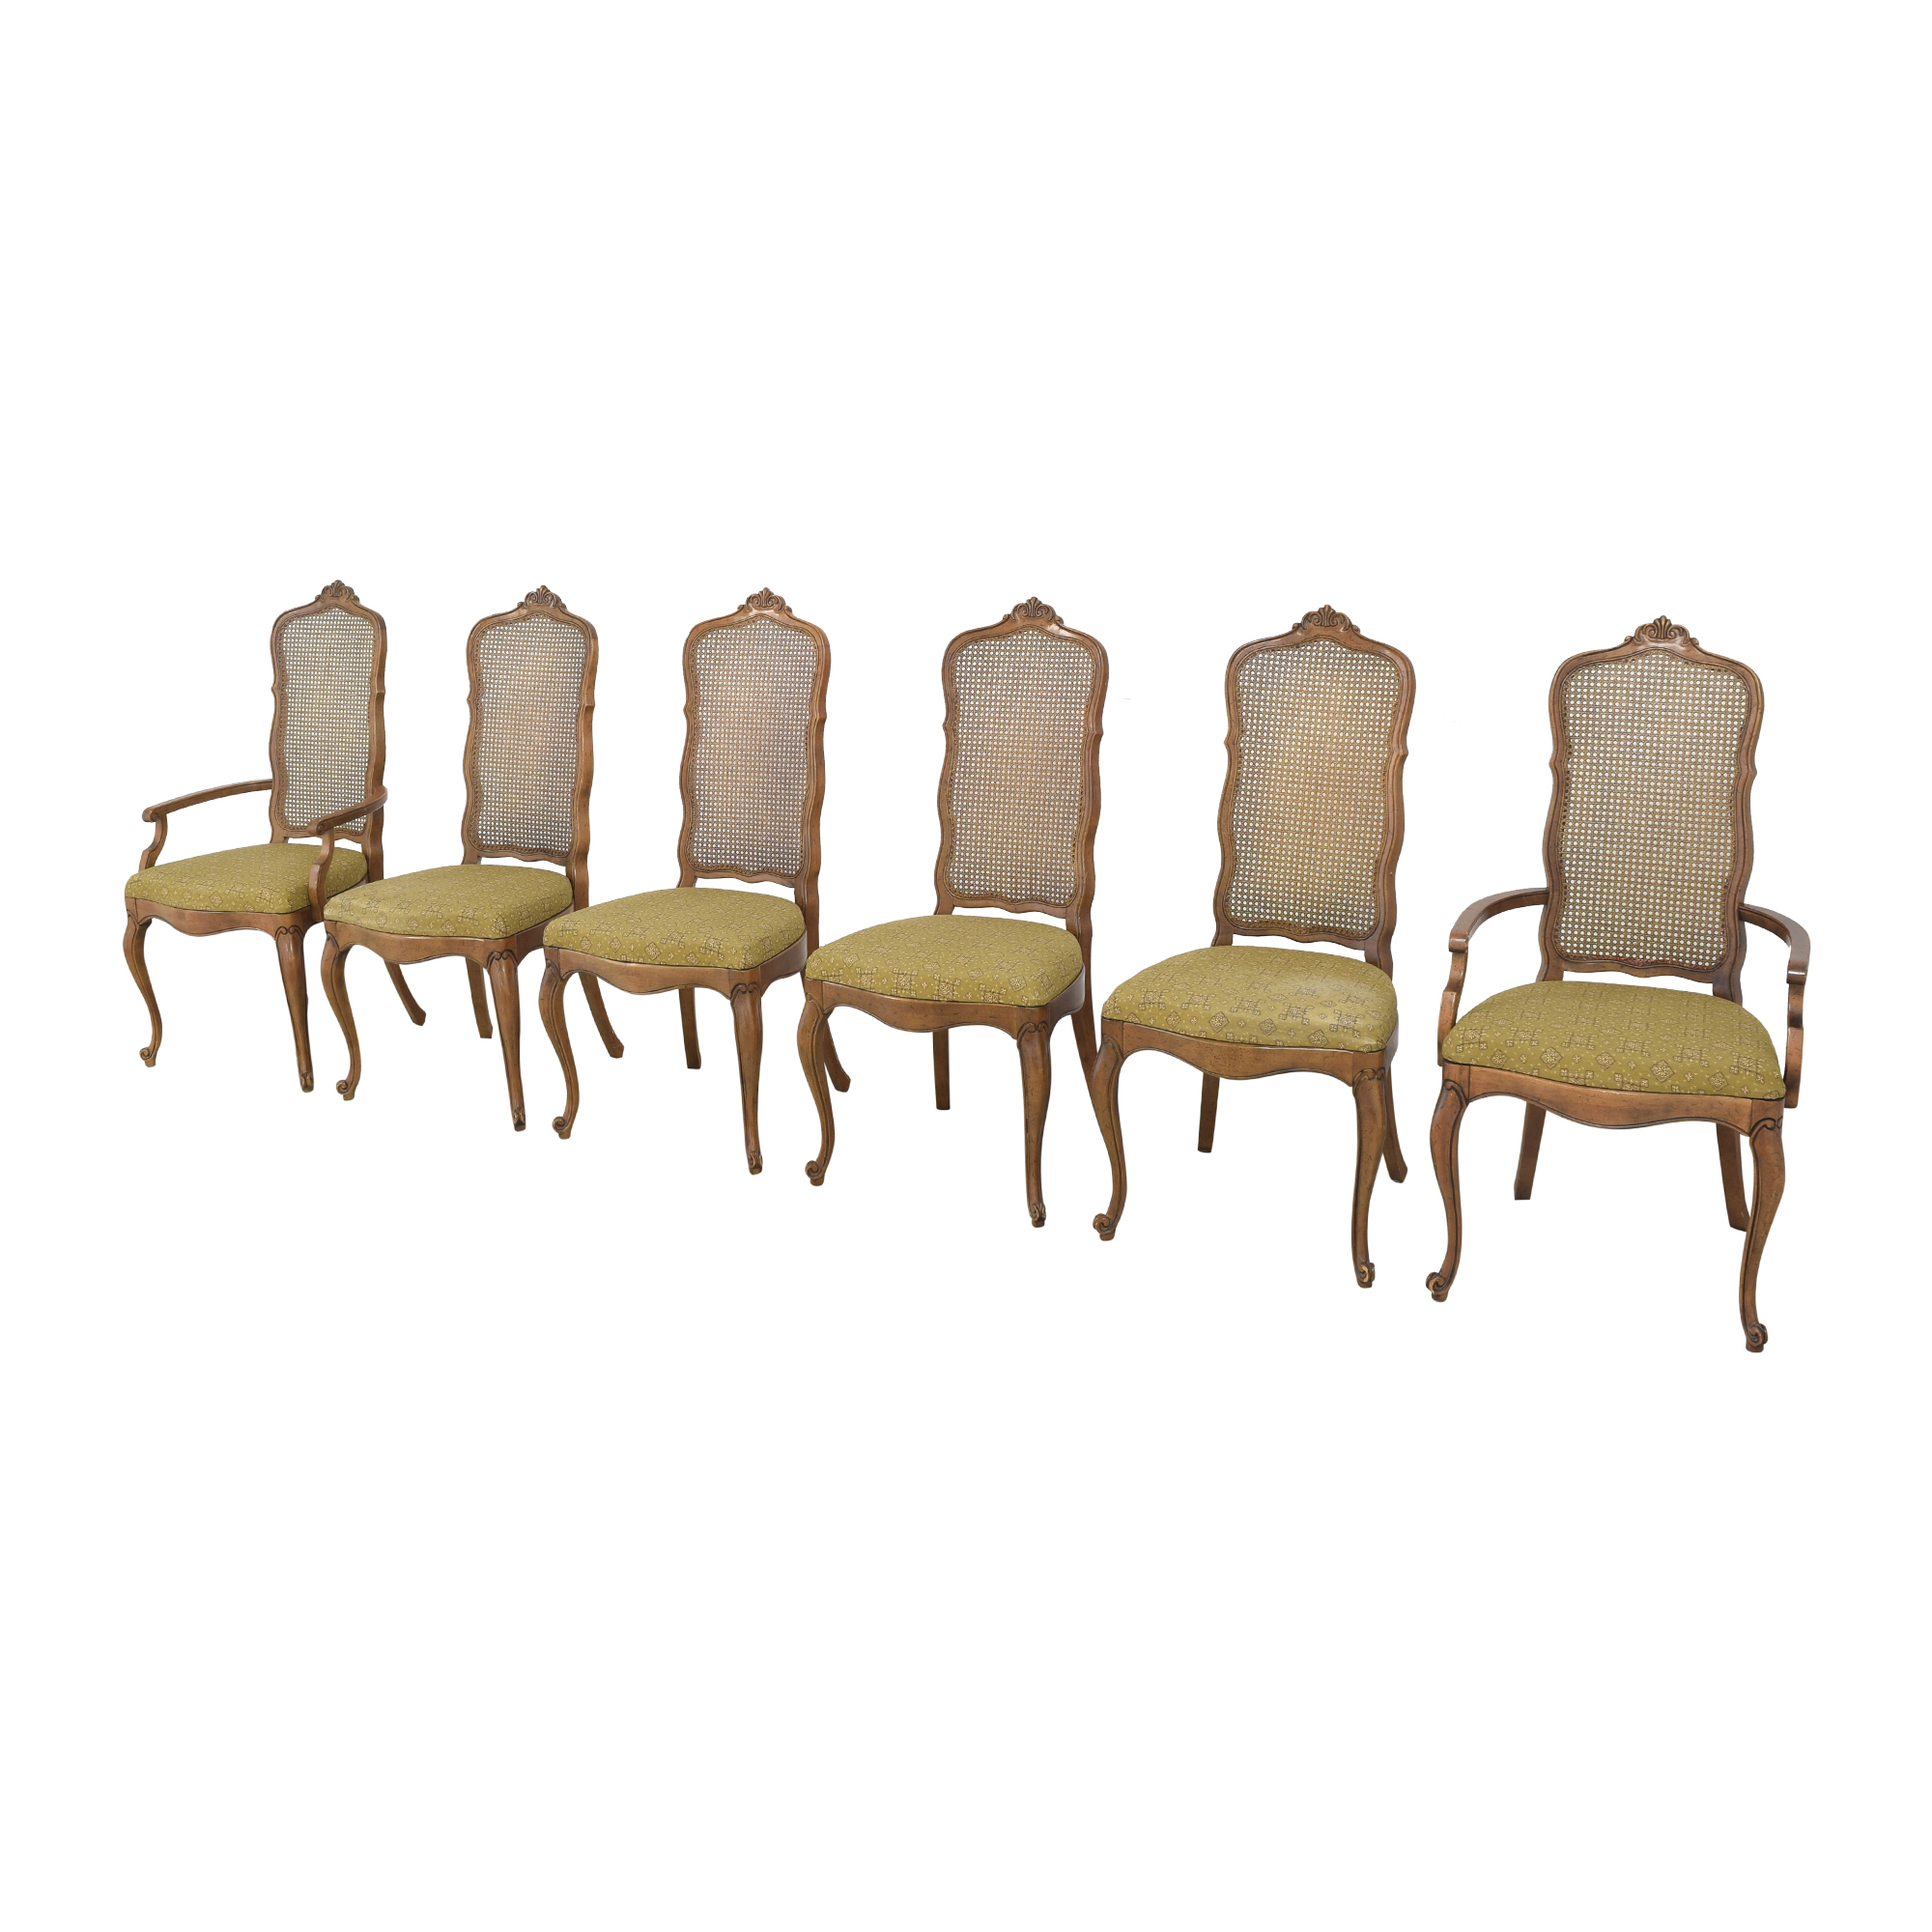 Drexel Drexel Touraine Dining Chairs